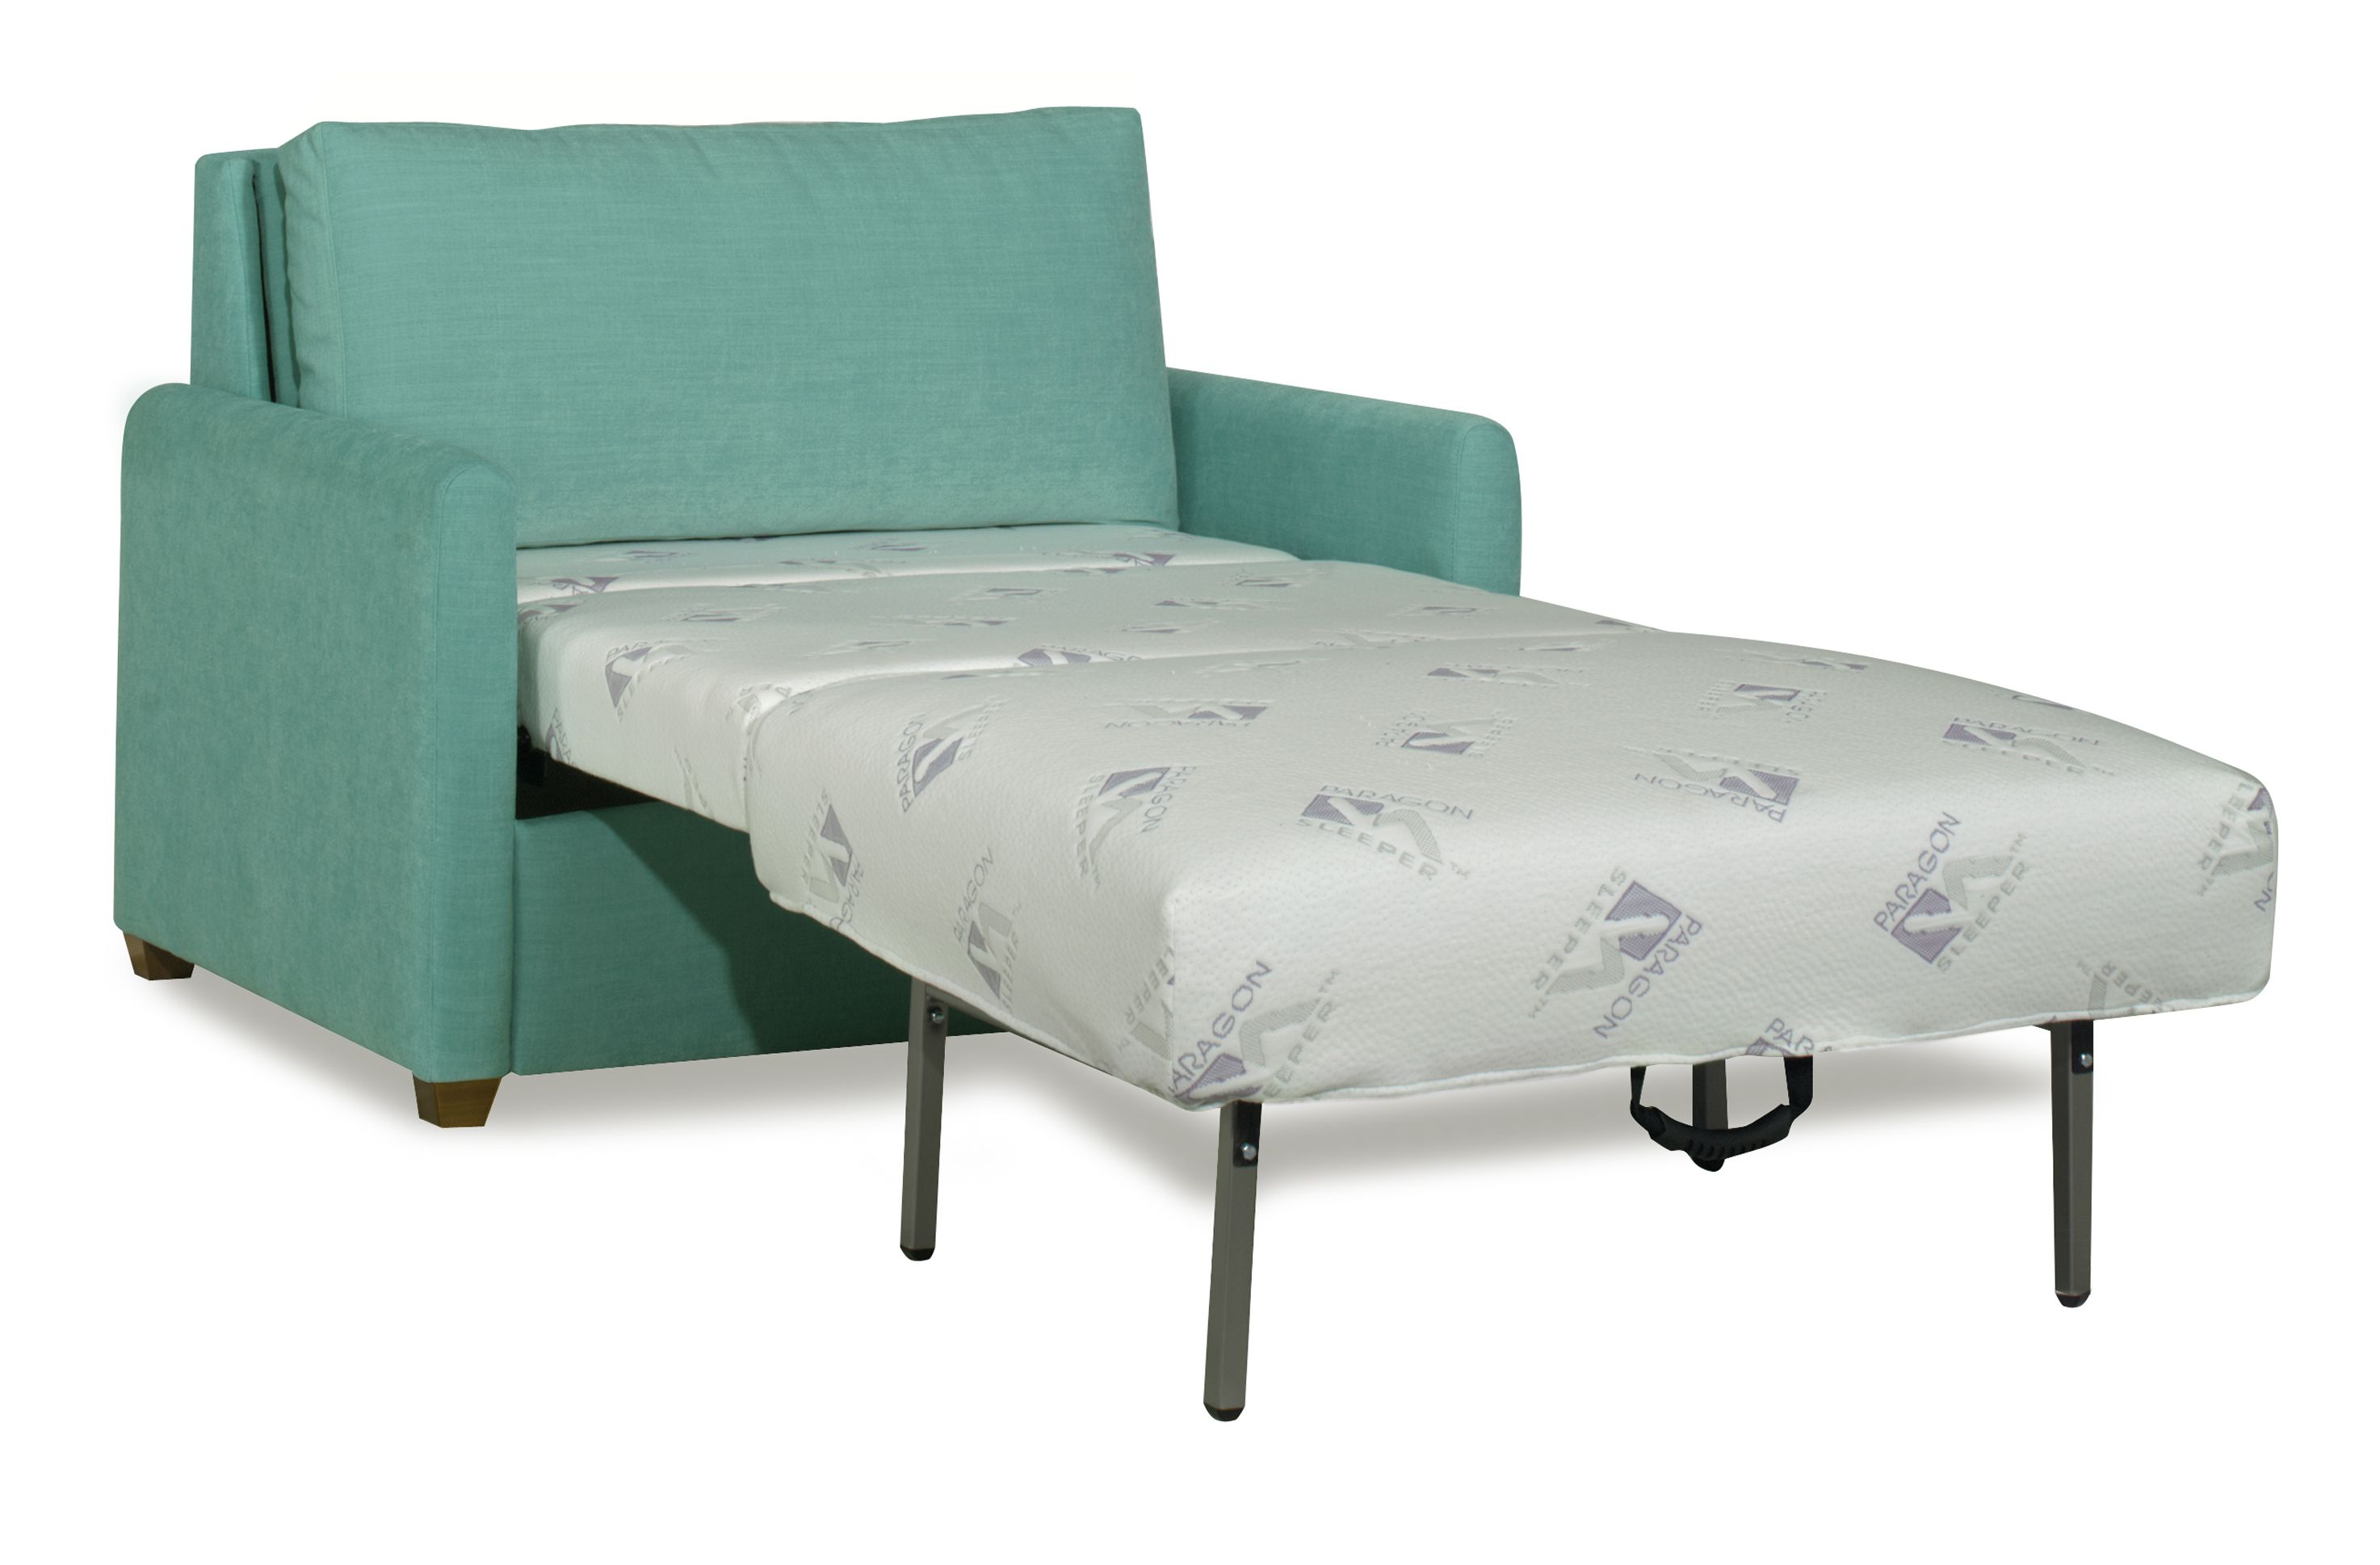 Fold Out Beds For Small Spaces Furniture Saving Small Living Room Spaces Using Twin